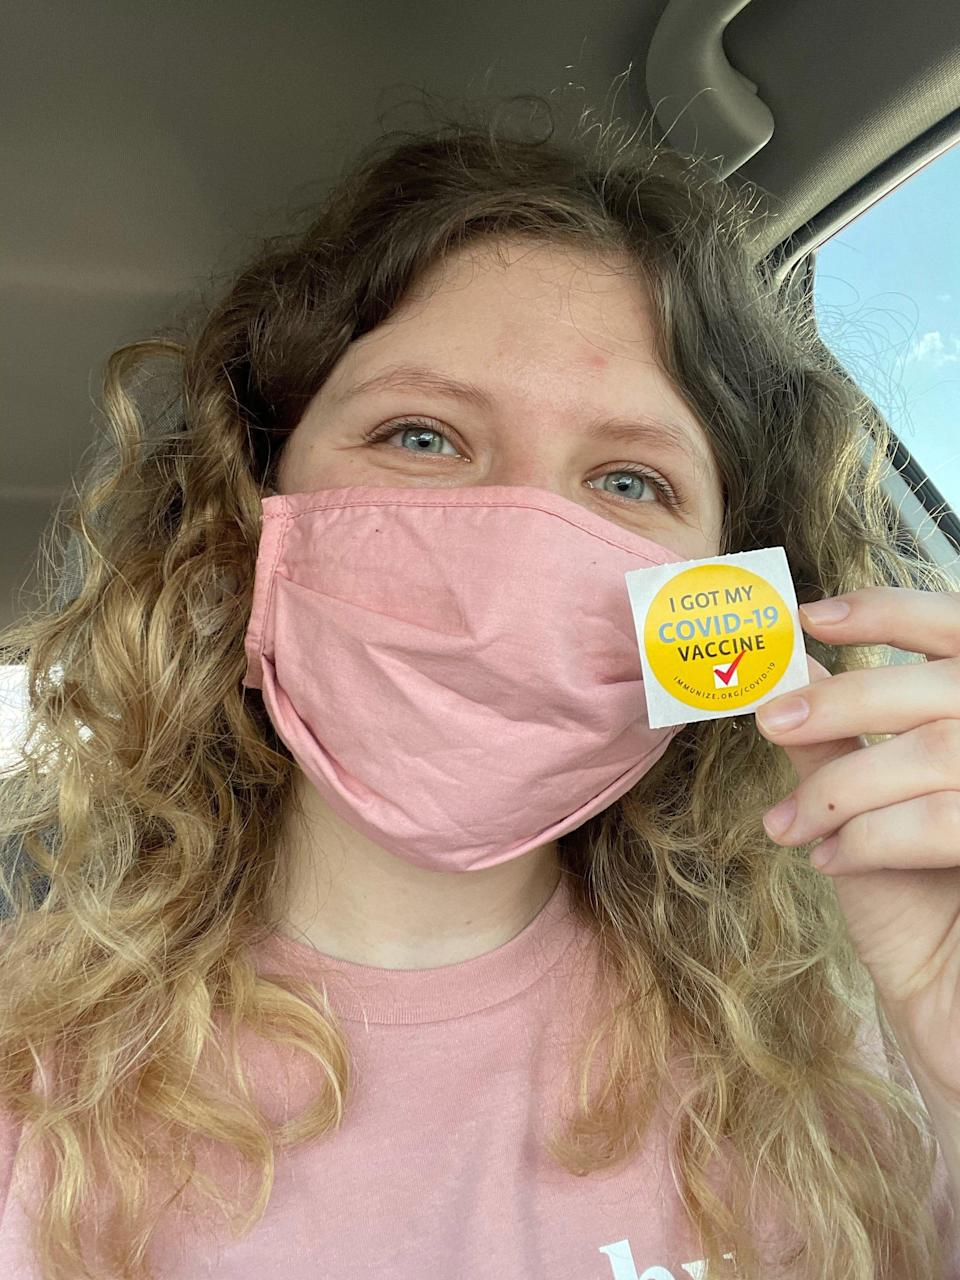 Emma Keith, an education reporter at The Norman Transcript in Oklahoma, was able to get vaccinated as part of the state's Phase 2 group on March 10. Keith, a former intern at the Detroit Free Press, posted her photo the correct way on social media by showing a sticker, not her CDC vaccine card with her personal information.